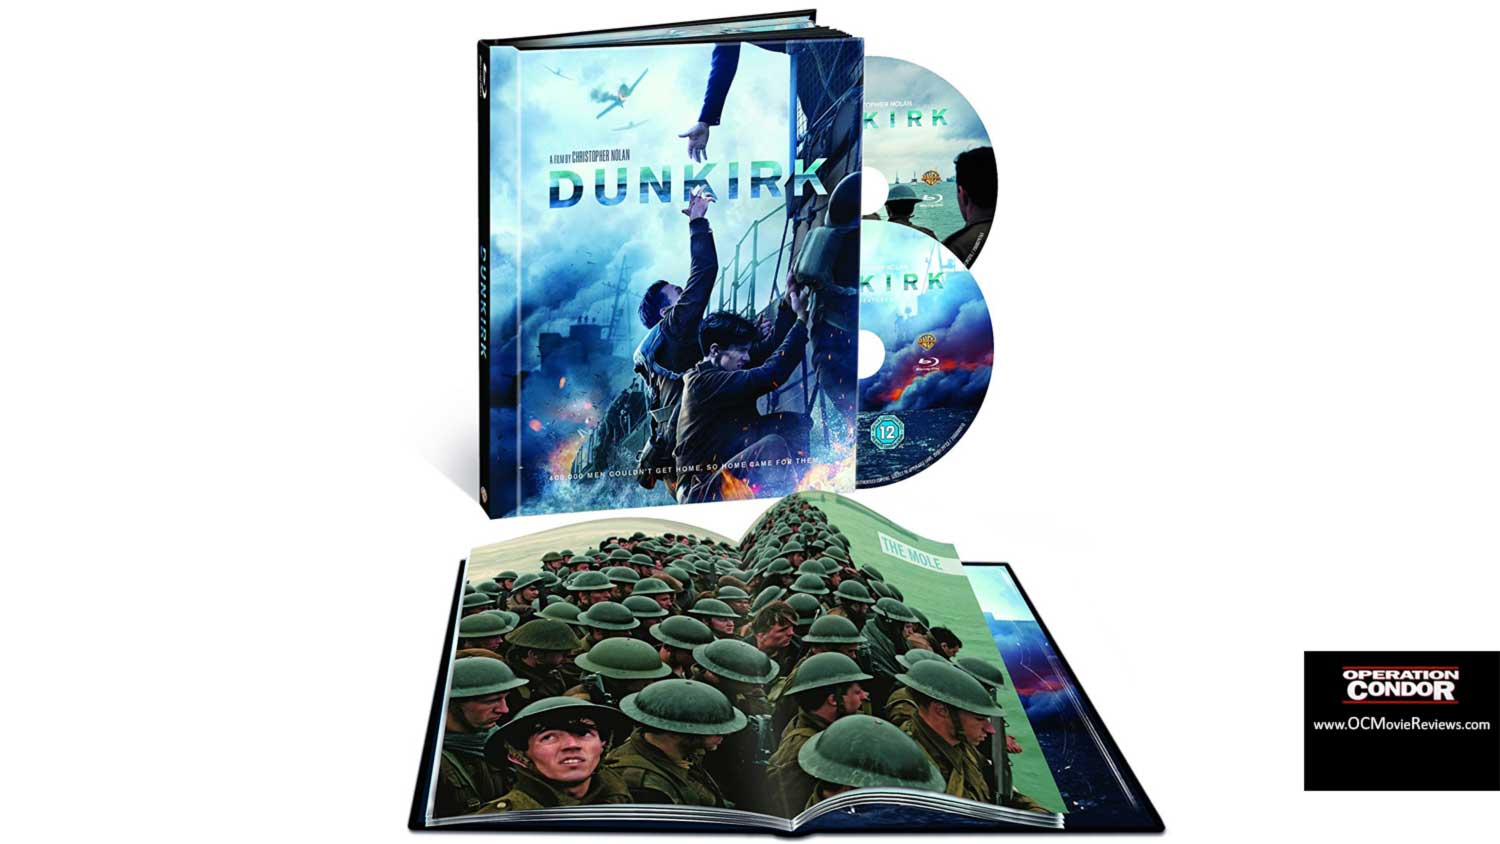 Dunkirk Limited Edition Filmbook Blu-ray Review – Is It Worth The Outlay? - OC Movie Reviews - Movie Reviews, Movie News, Documentary Reviews, Short Films, Short Film Reviews, Trailers, Movie Trailers, Interviews, film reviews, film news, hollywood, indie films, documentaries